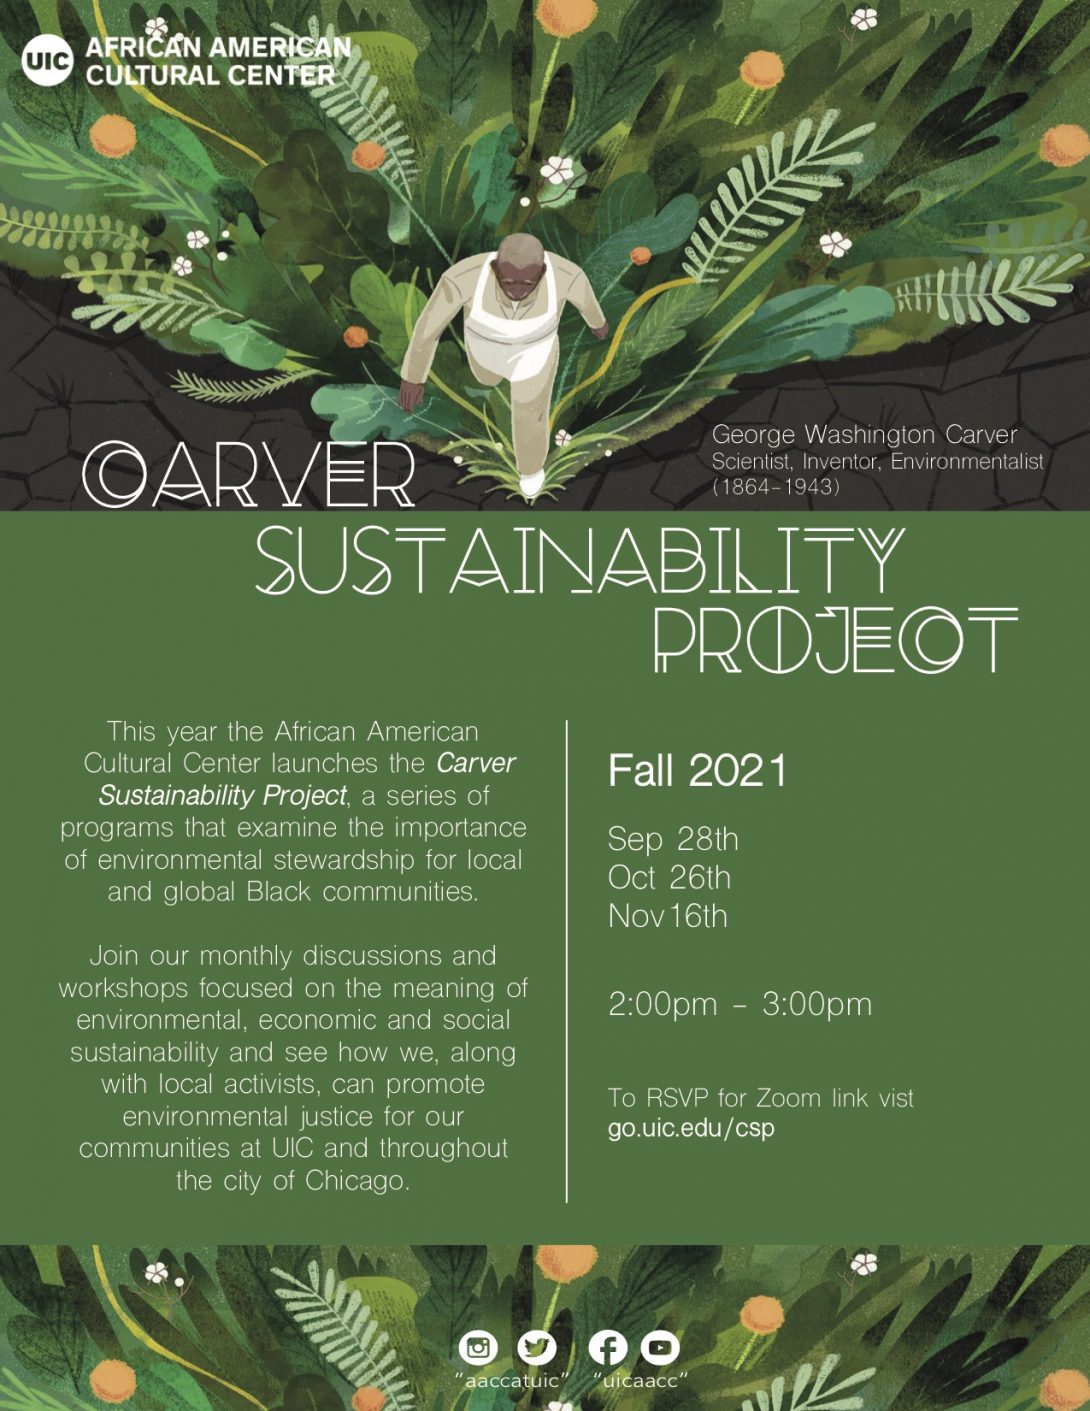 Carver Sustainability Project